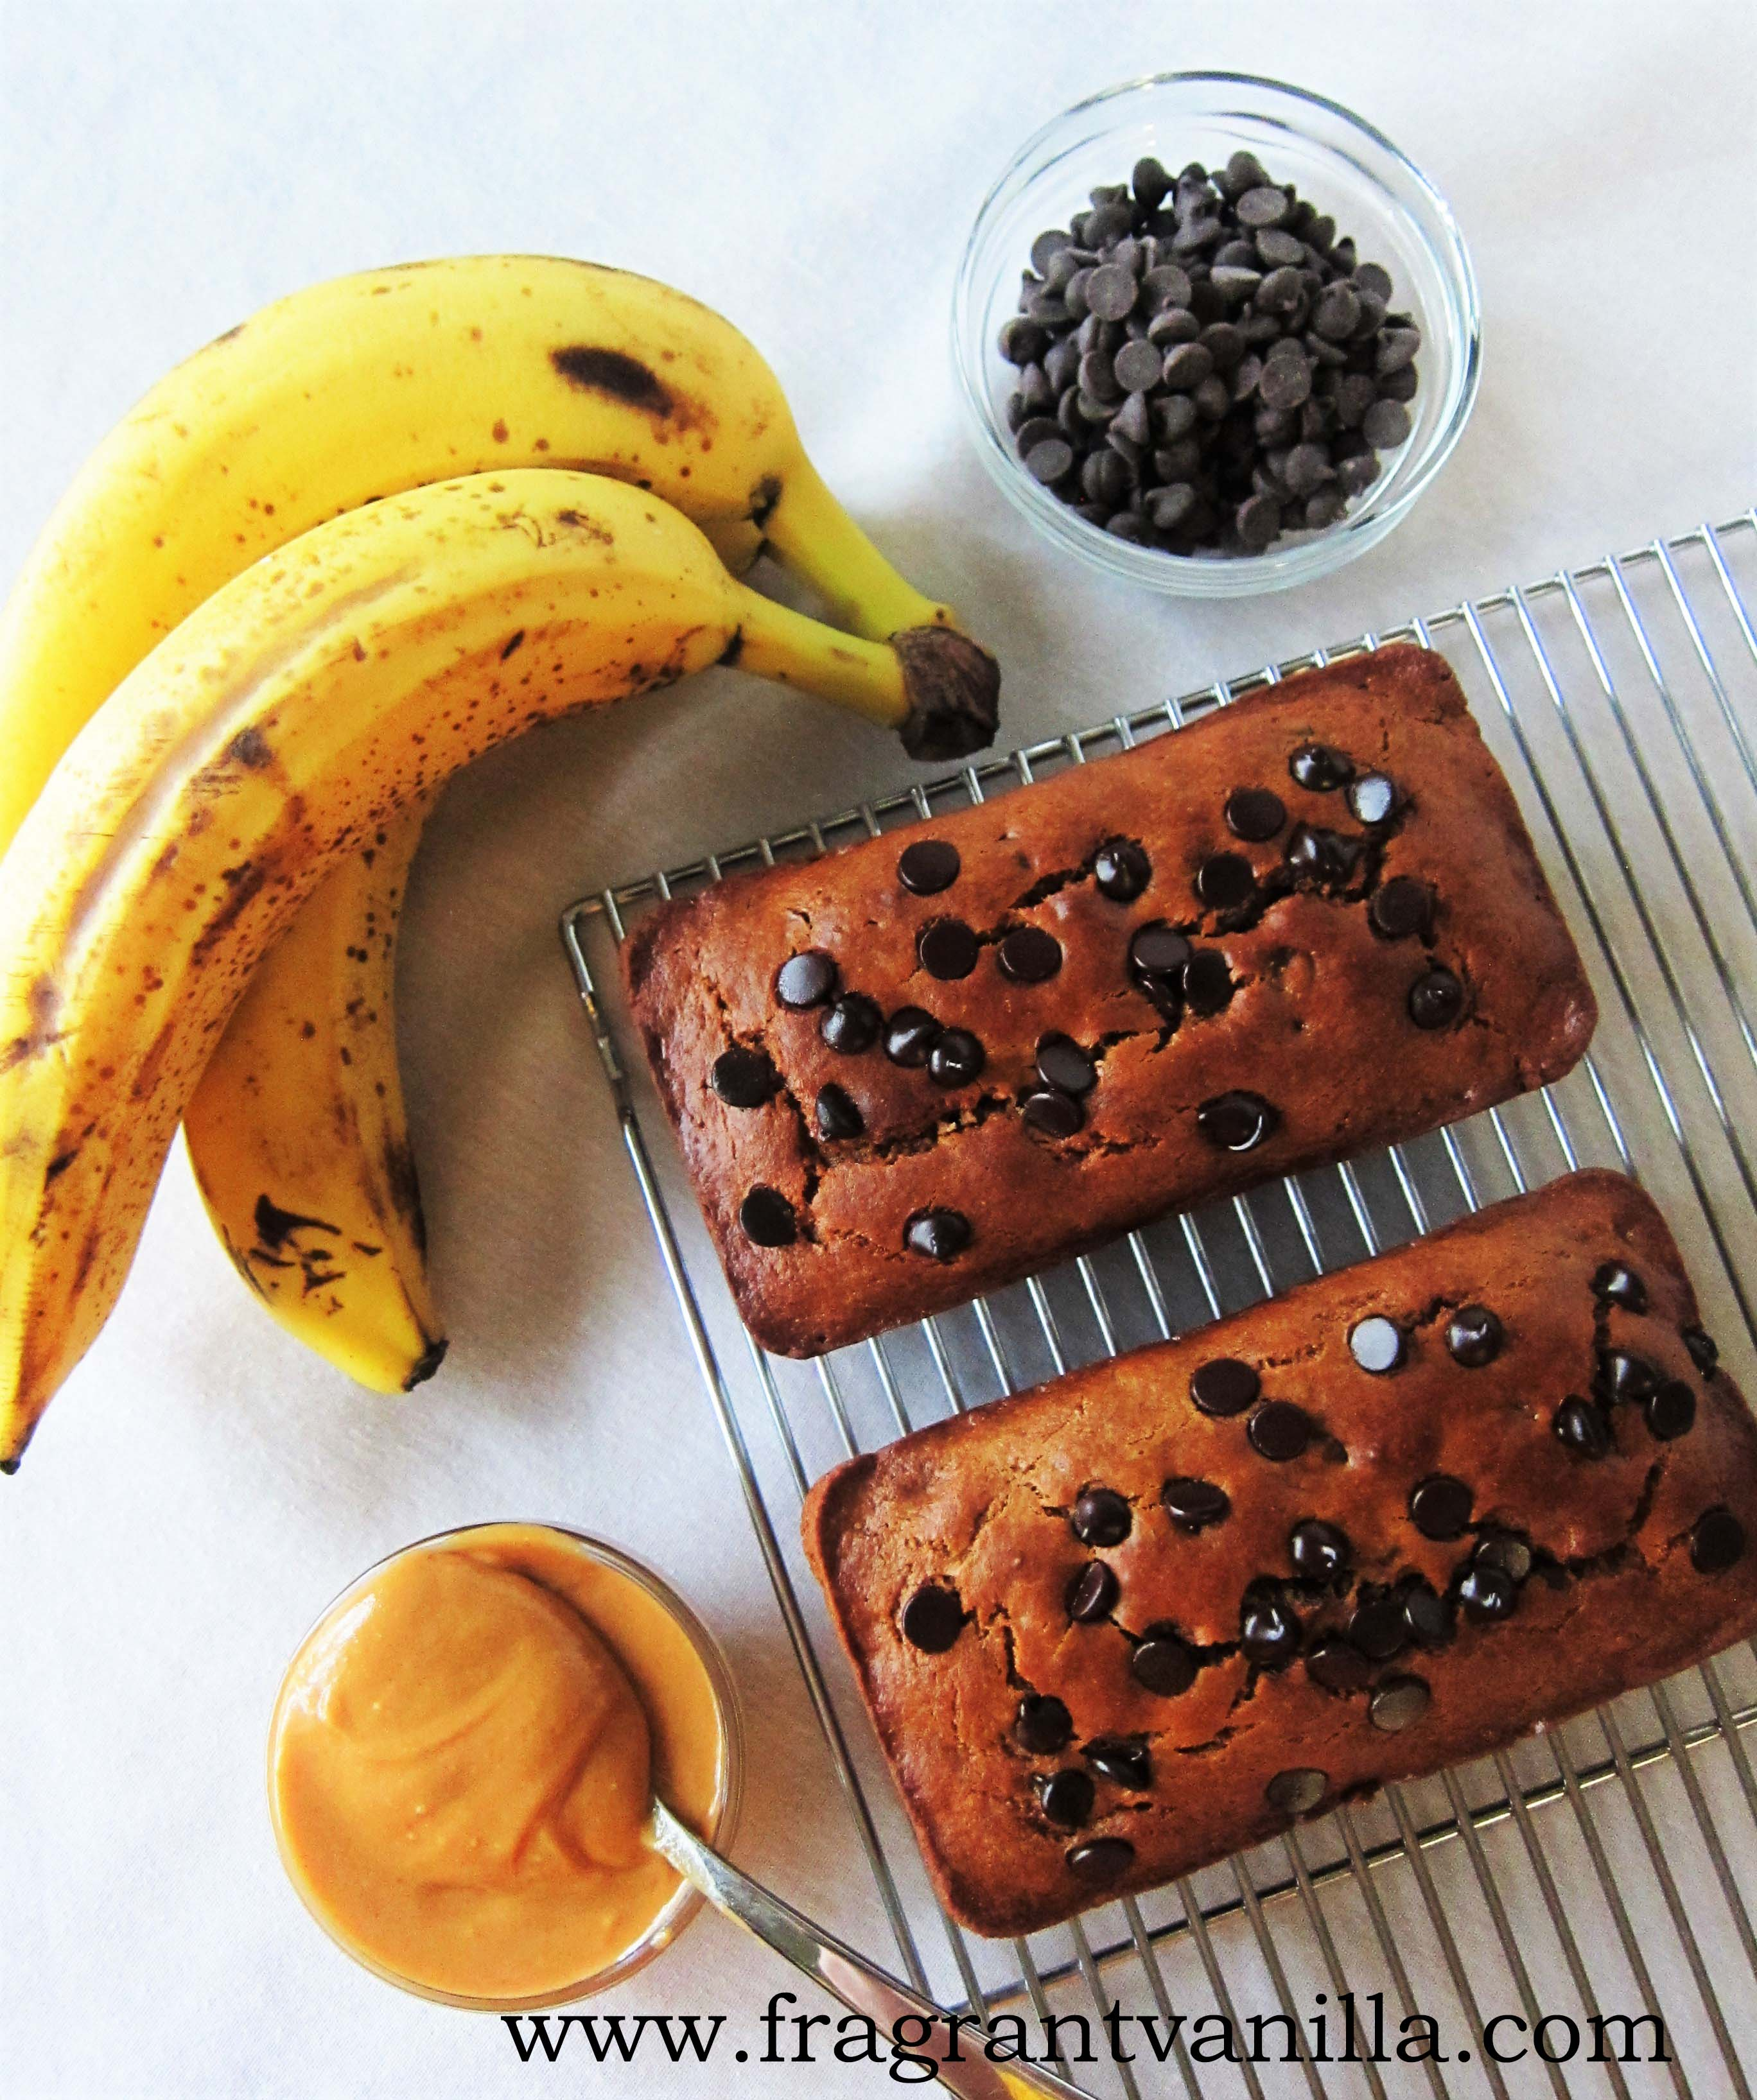 Vegan Peanut Butter Banana Chocolate Chip Bread